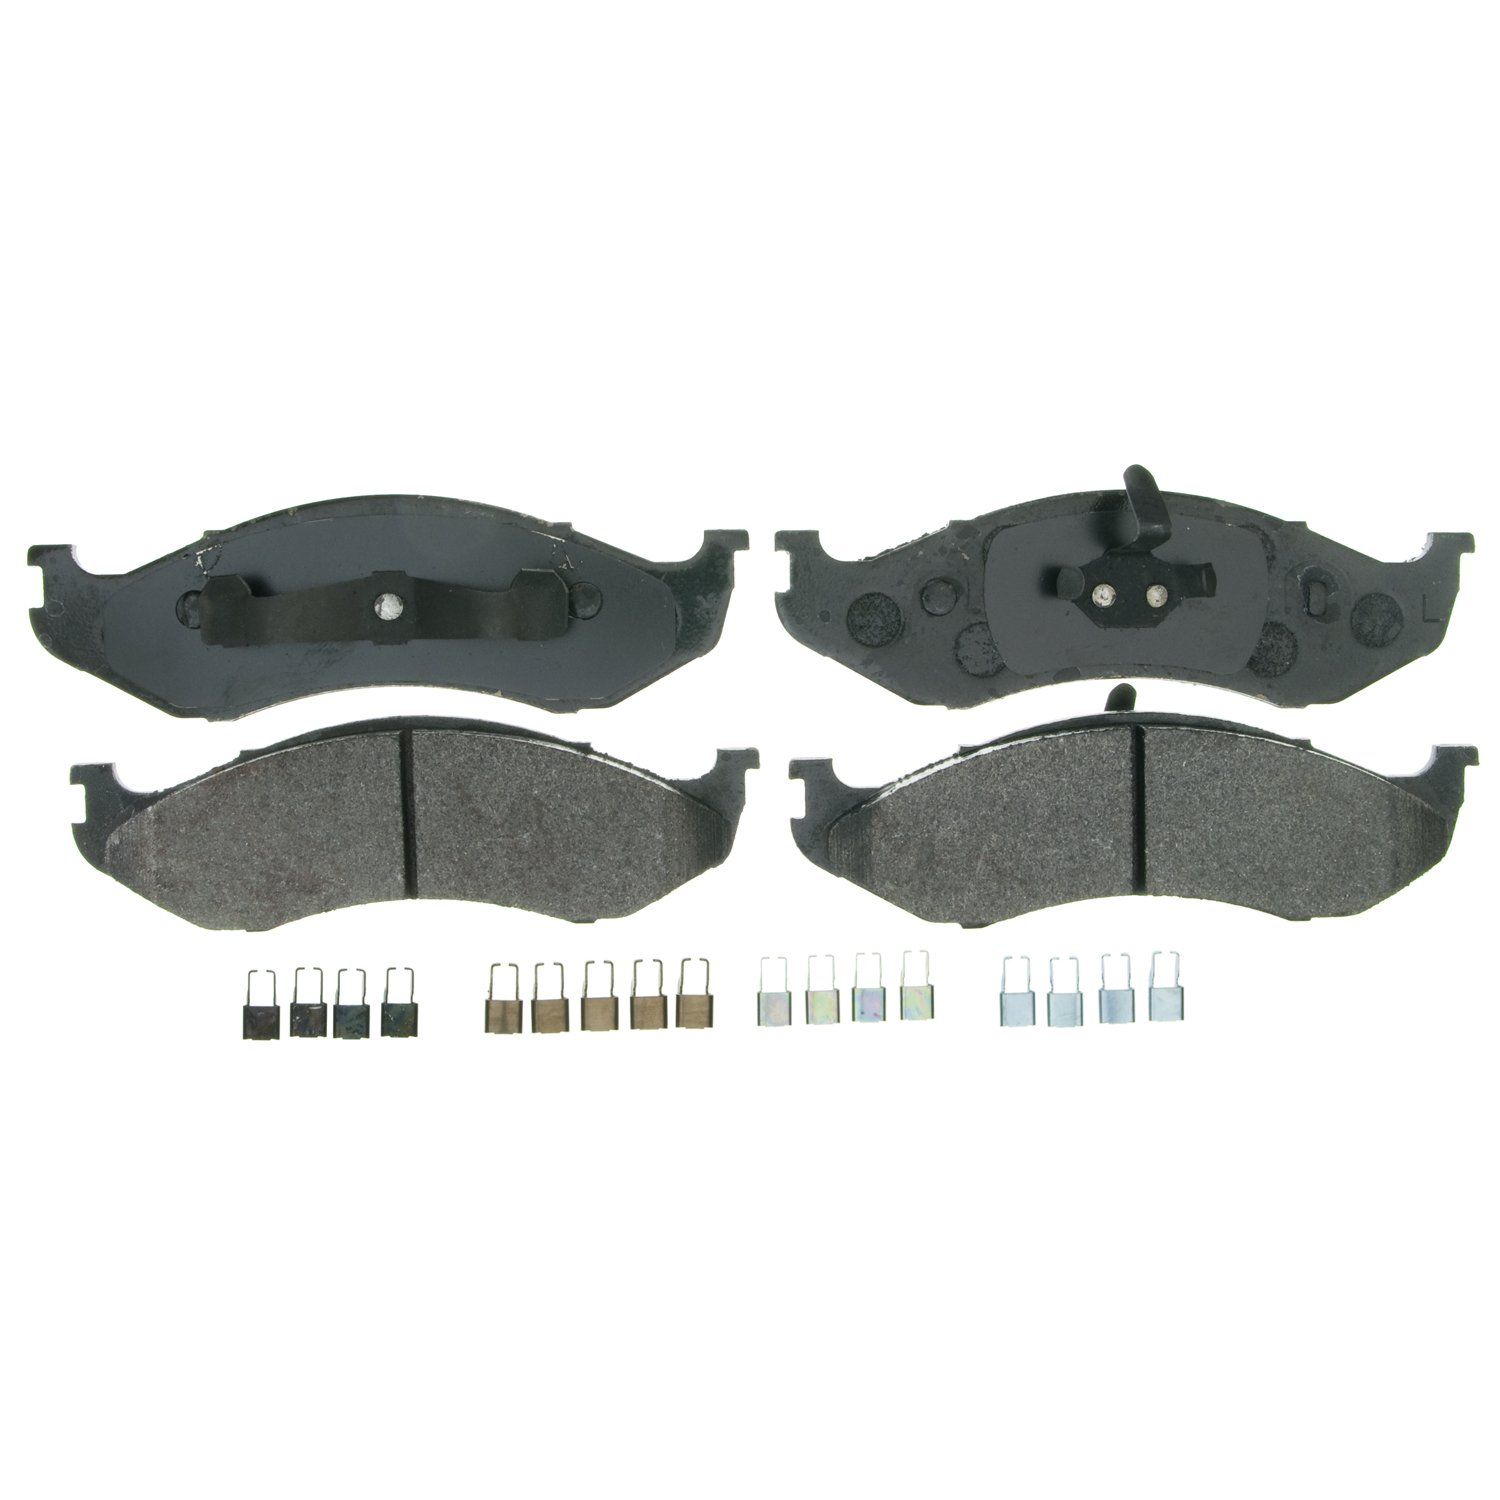 Front Wagner Brake Wagner QuickStop ZX477 Semi-Metallic Disc Pad Set Includes Pad Installation Hardware